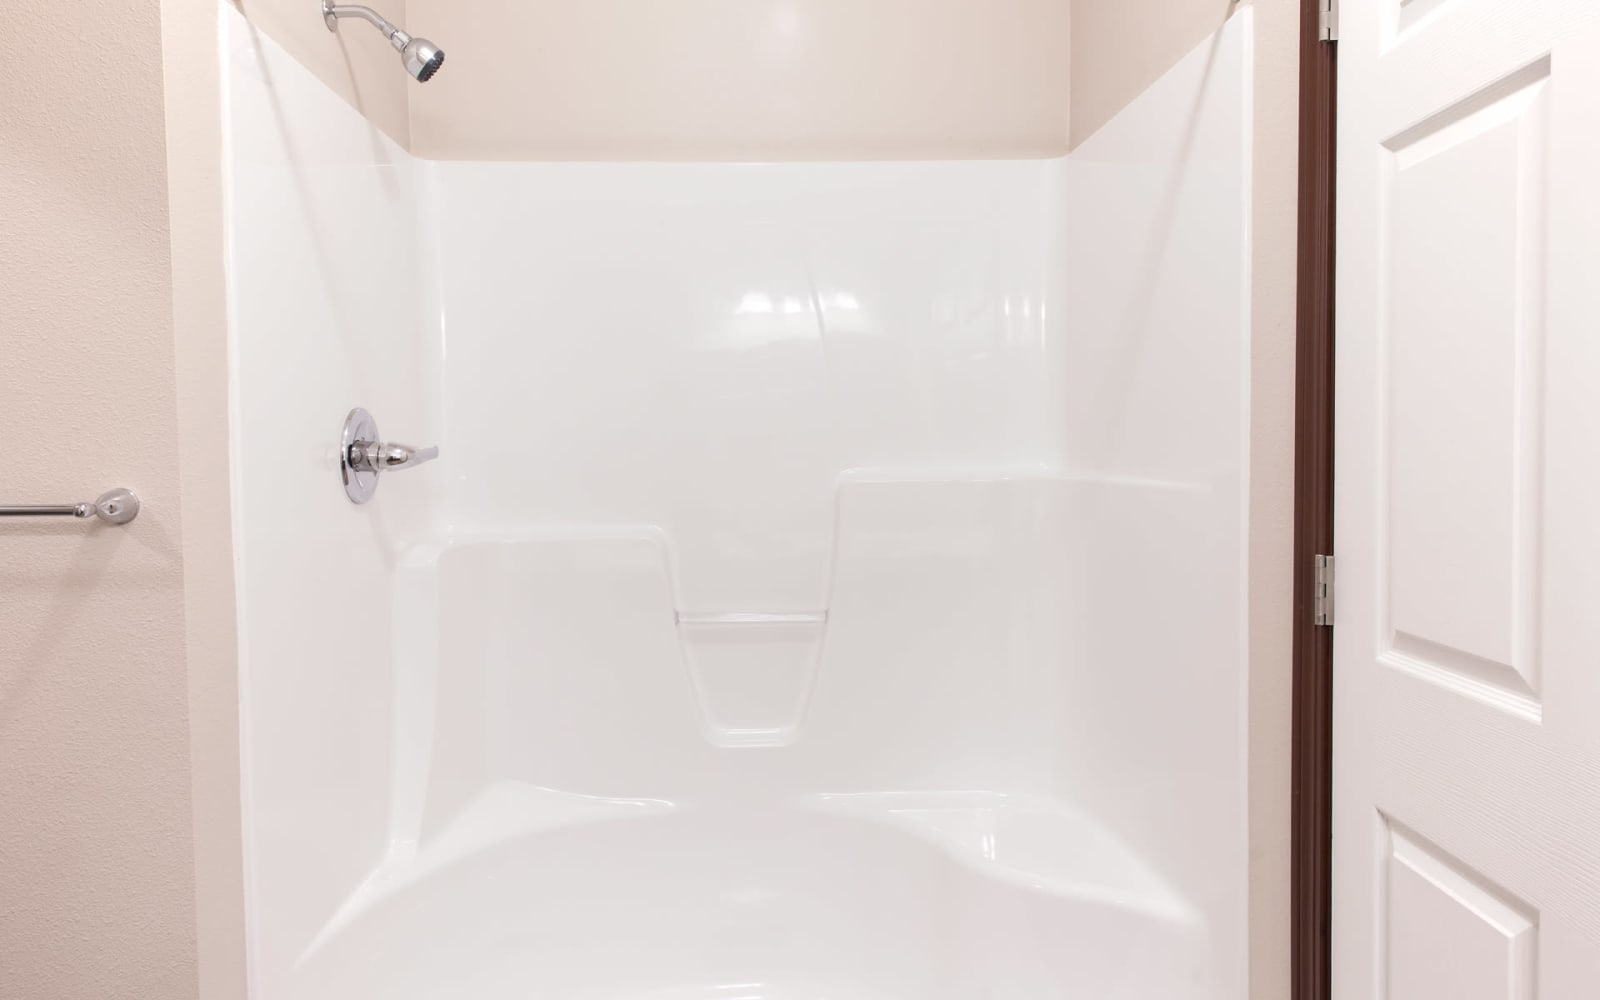 Large apartment shower at Ironwood in Altoona, Iowa